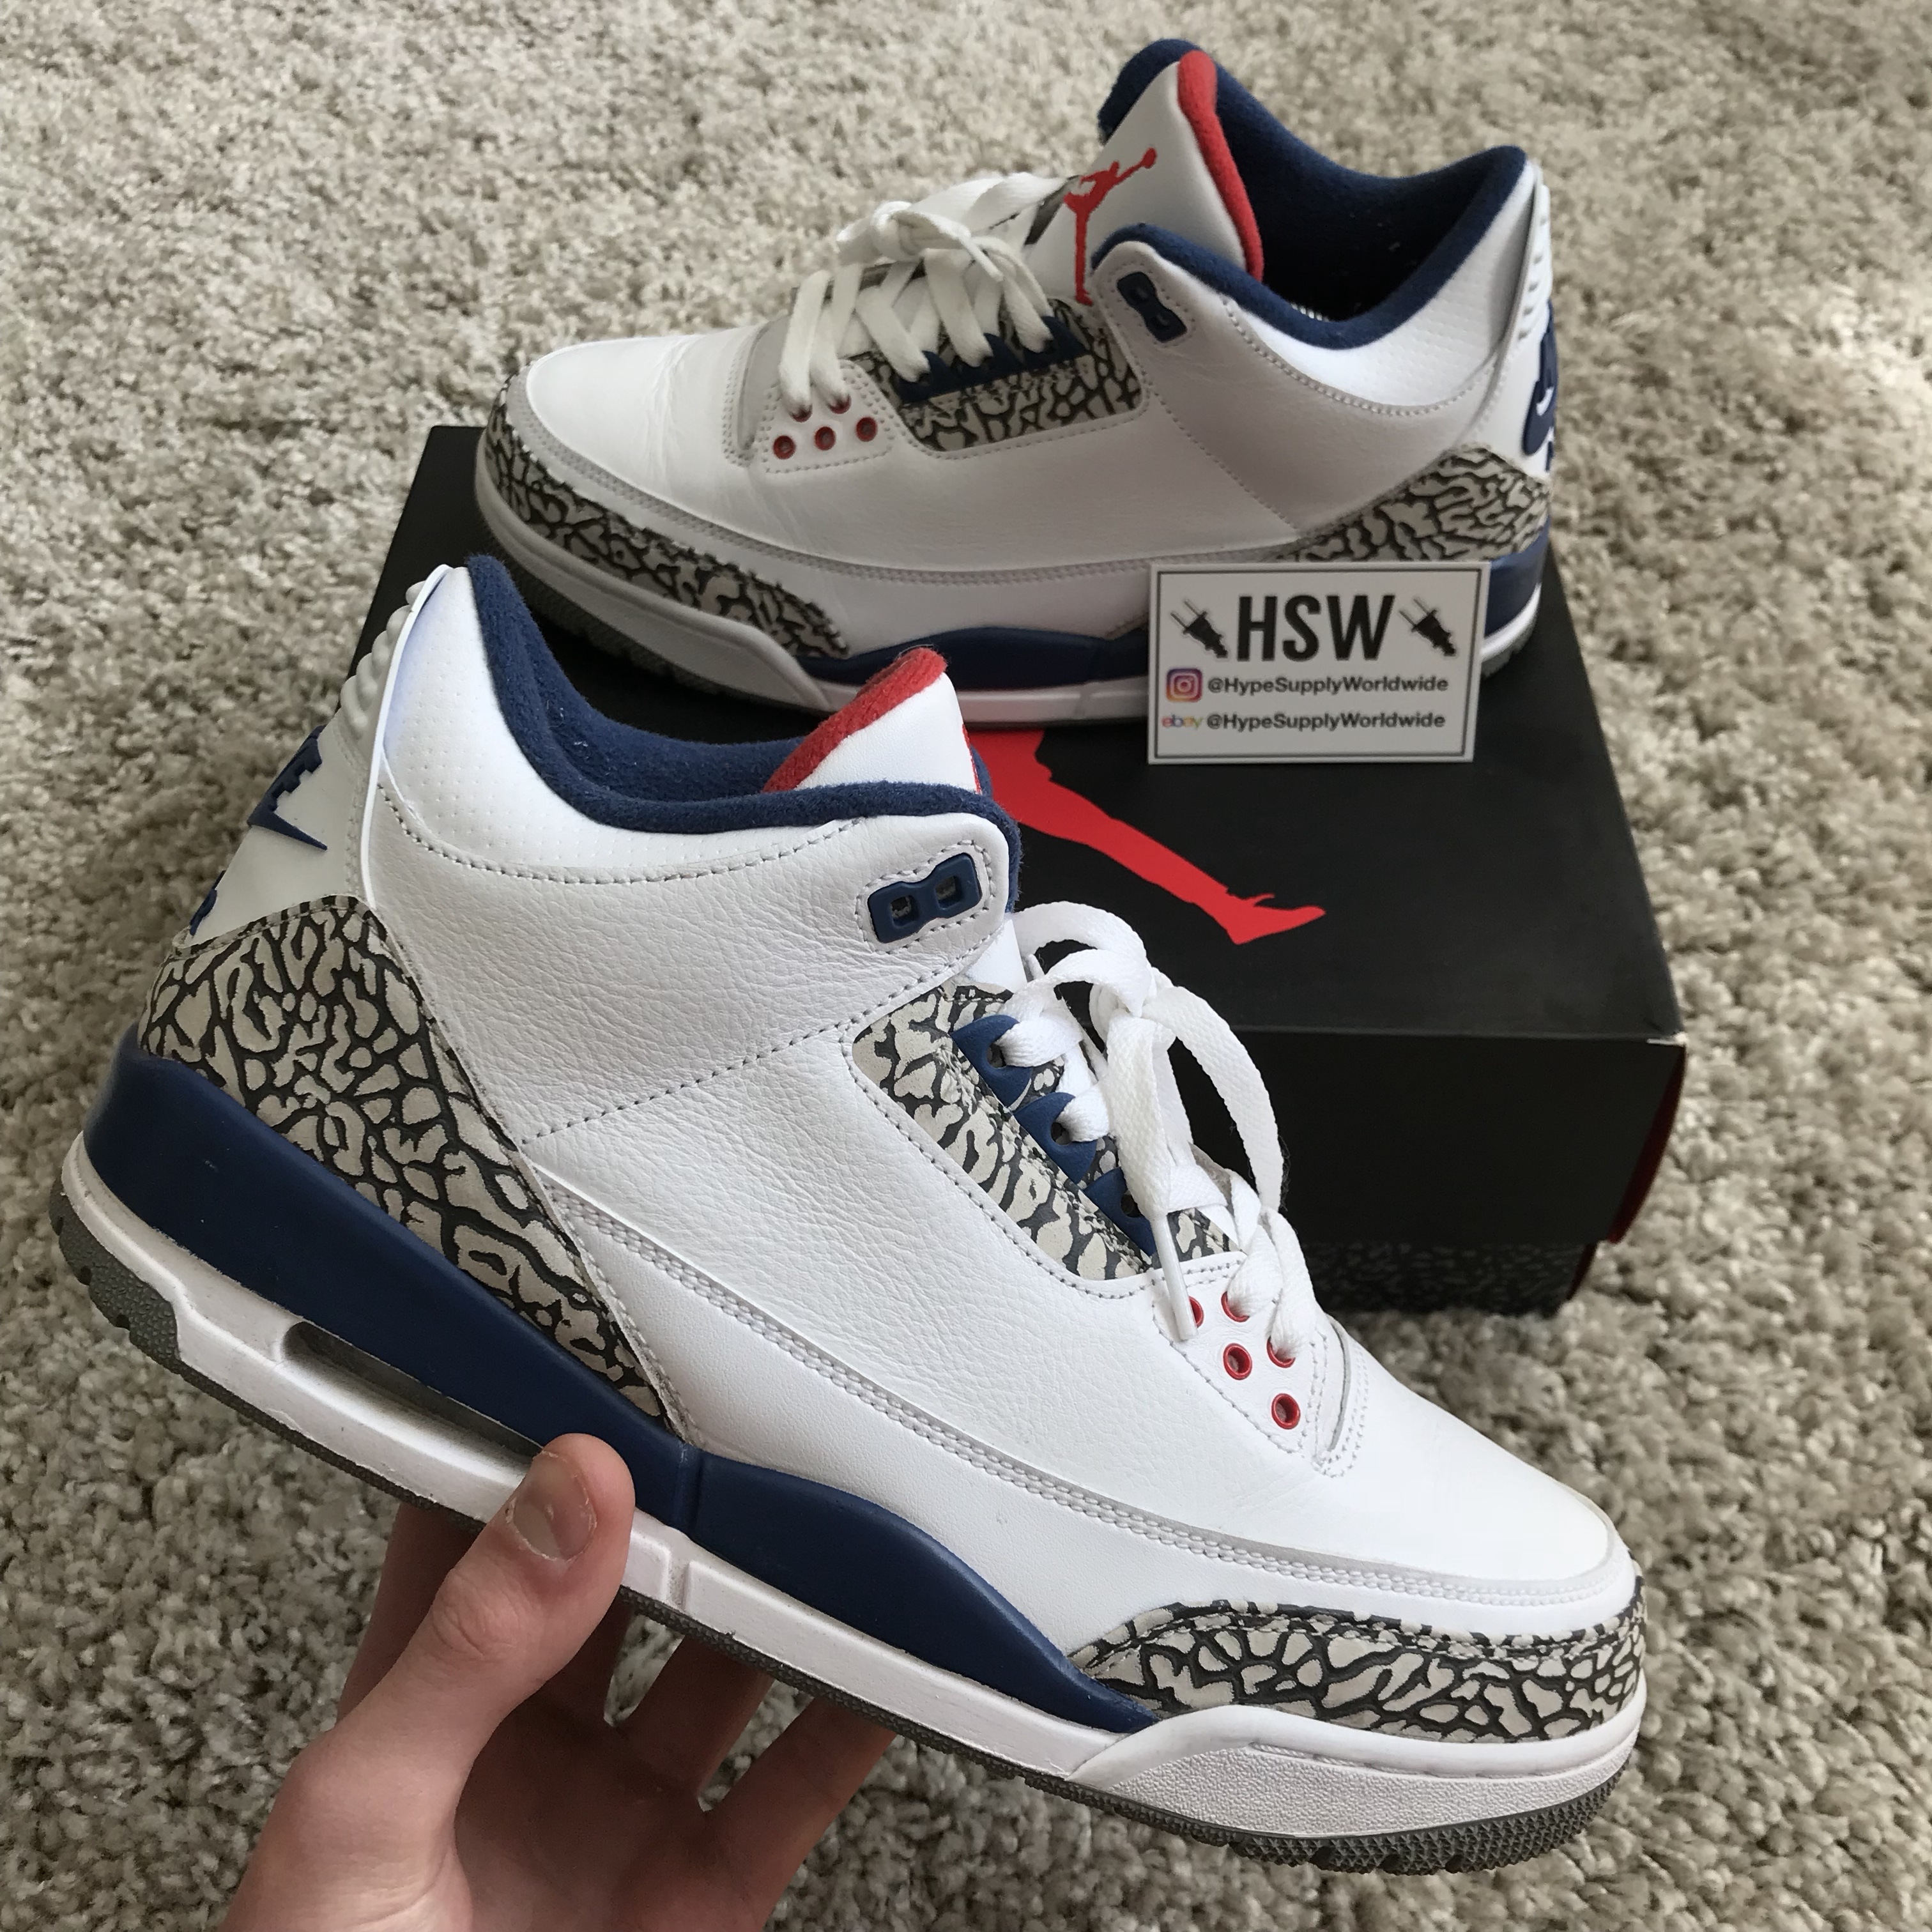 1429406cf55079 Nike Air Jordan 3 Retro OG High True Blue. Size UK 9 but fit - Depop